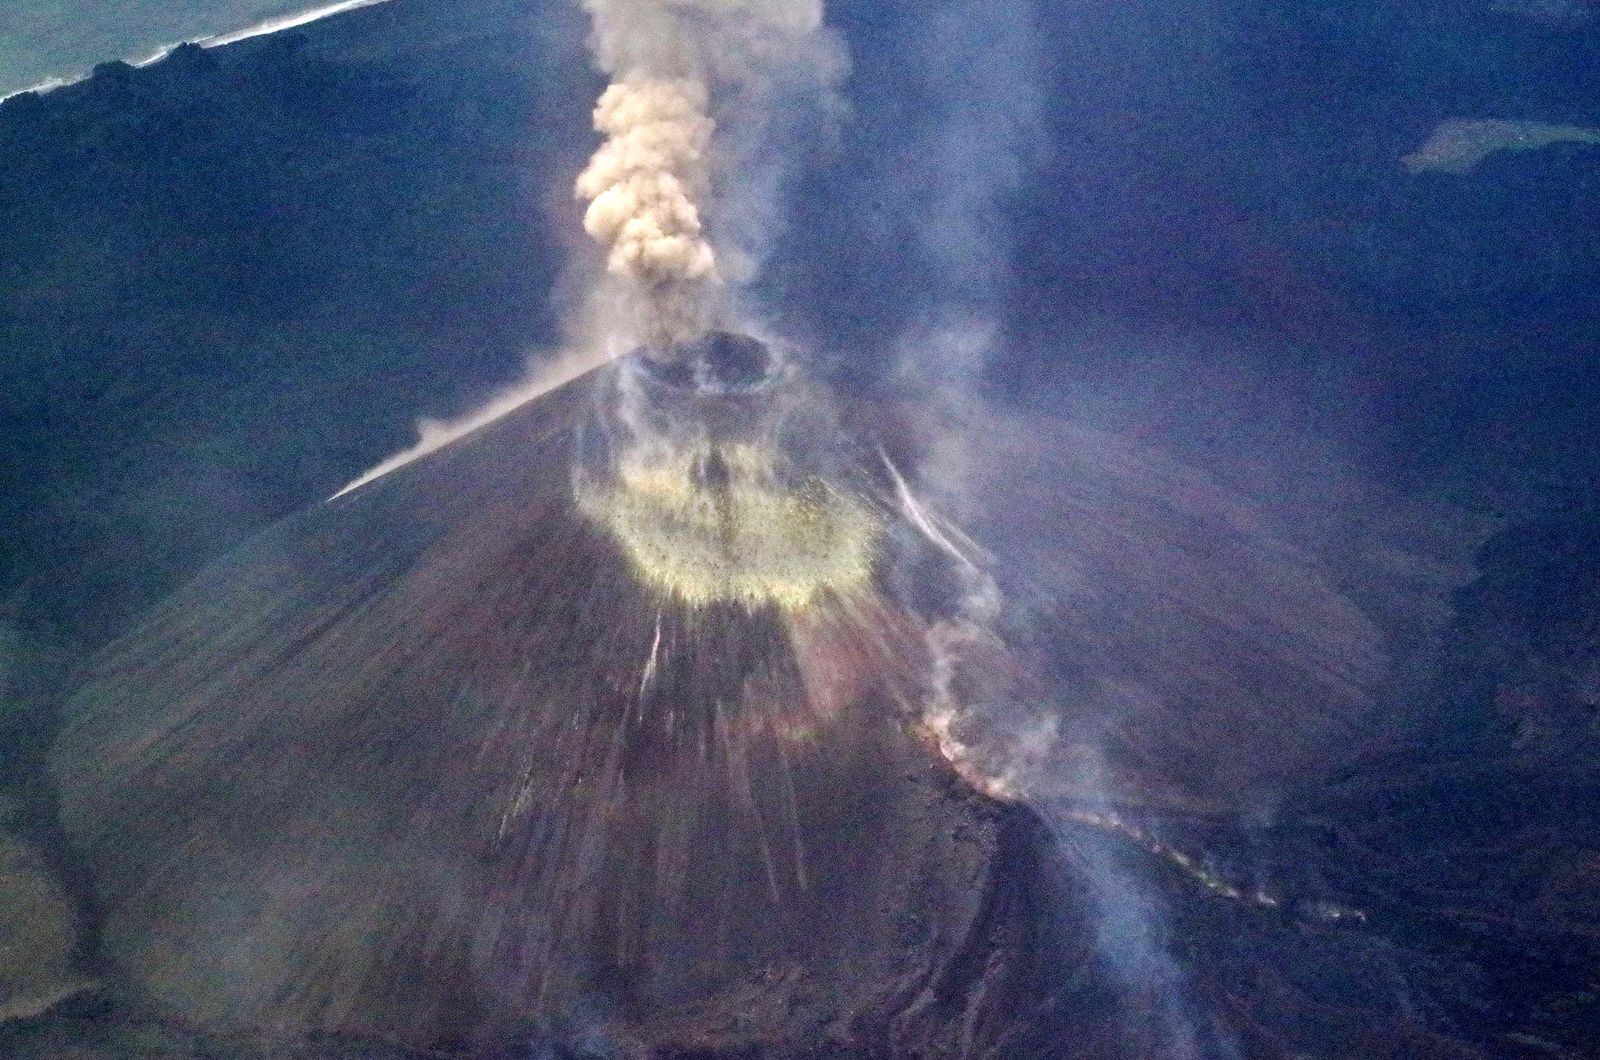 Nishinoshima - summit of the active cone and sulfur deposits on 04.29.2020 / 12:40 p.m. - photo Japan Coast Guards